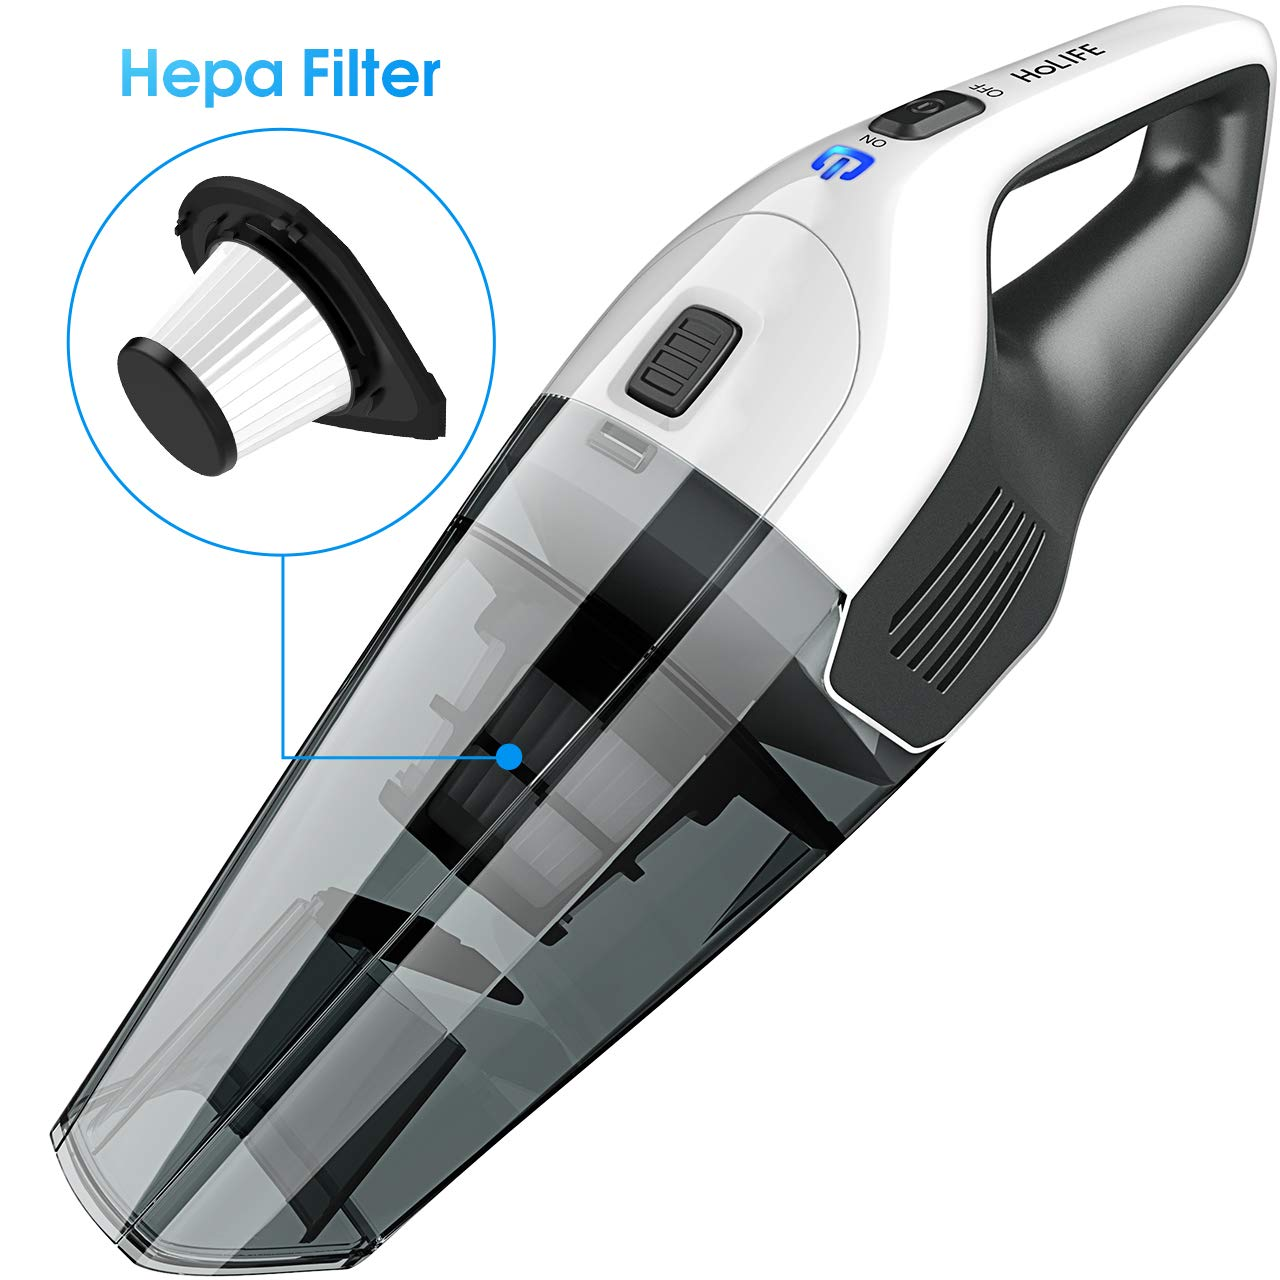 Holife 036BWUS Handheld 4KPA Portable Car Vacuum Cleaner Lightweight Hand Vac with Rechargeable 2200mAh Lithium Battery, Black